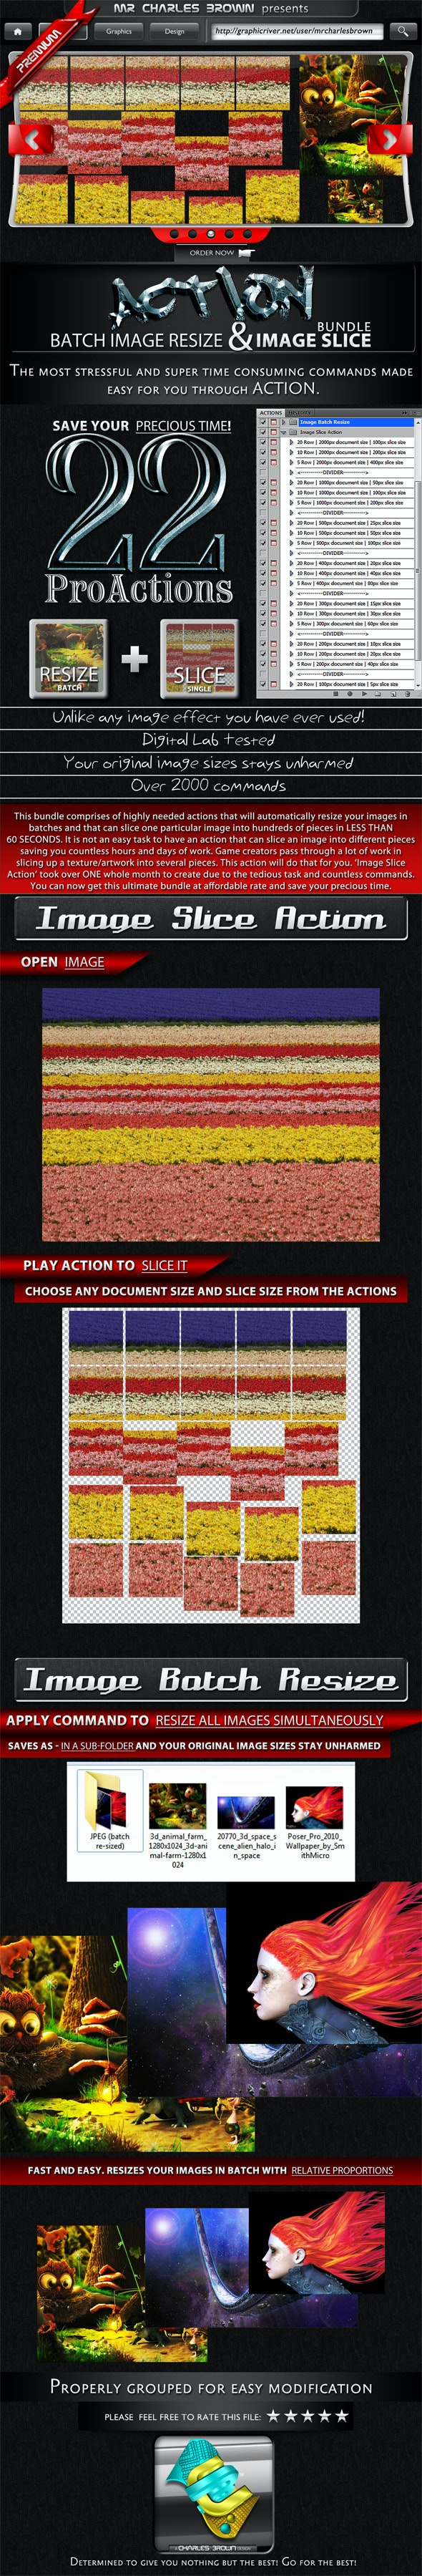 Image Batch Resize and Slice Action Pack - Actions Photoshop